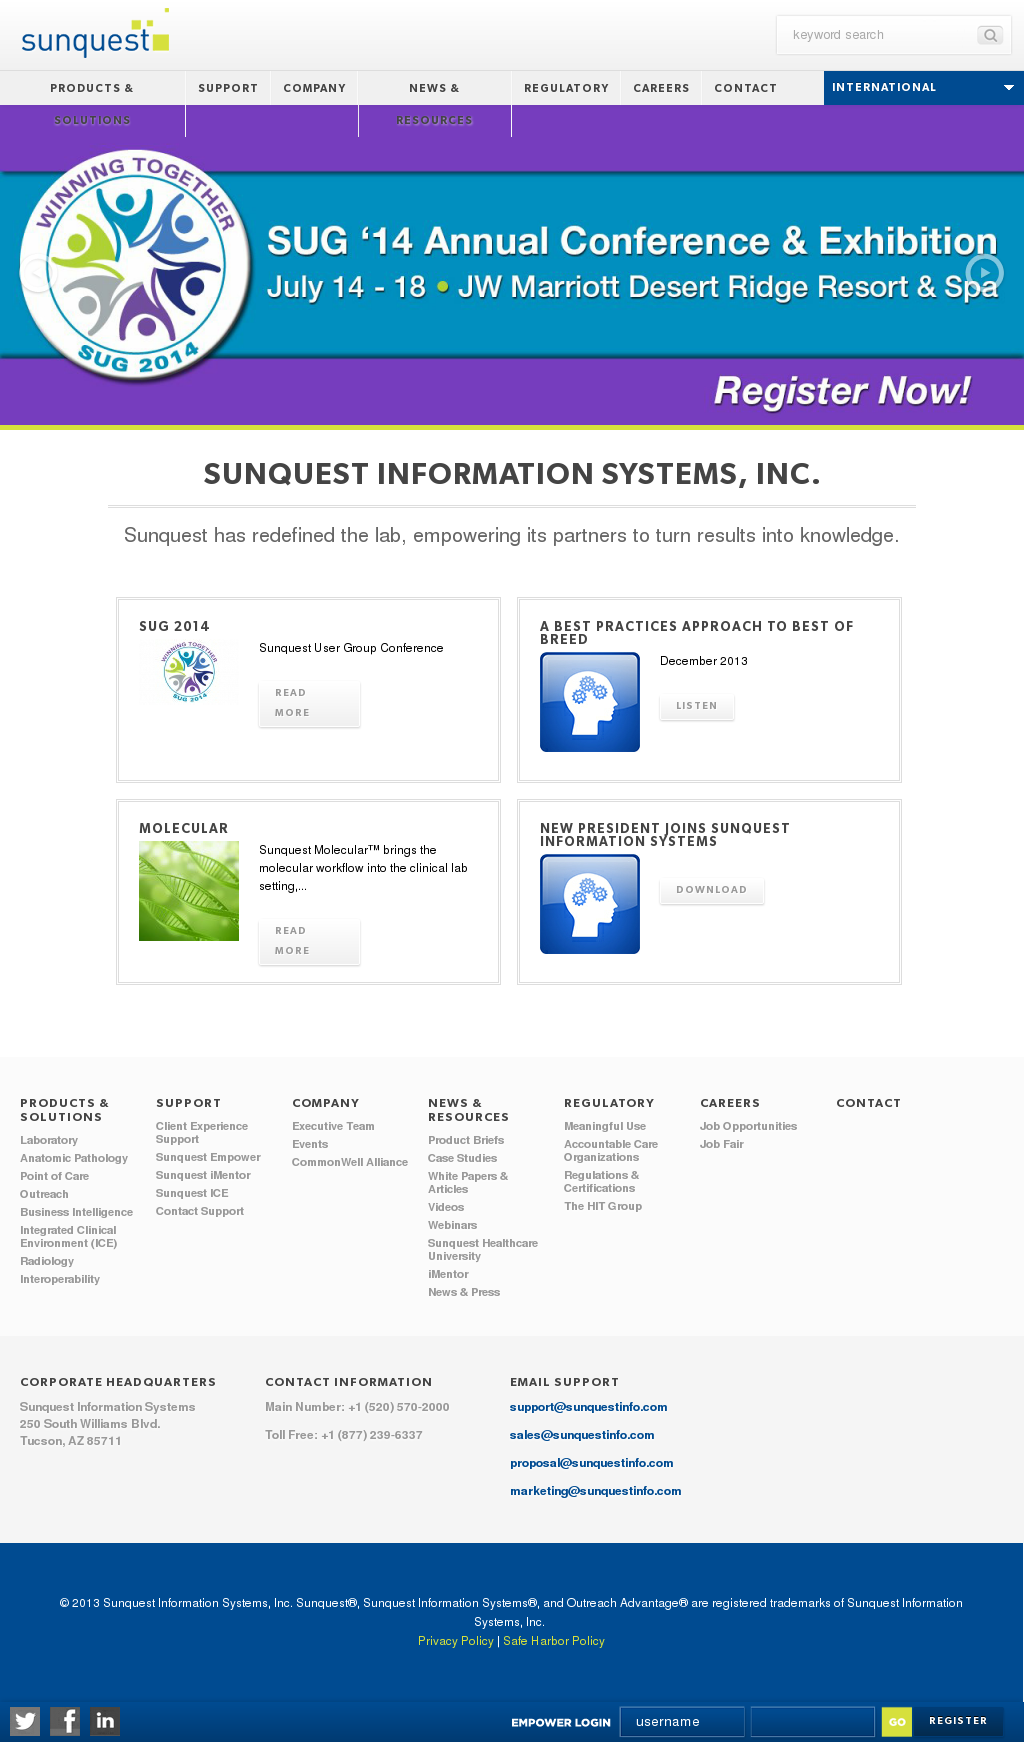 Sunquest Information Systems Competitors, Revenue and Employees - Owler  Company Profile